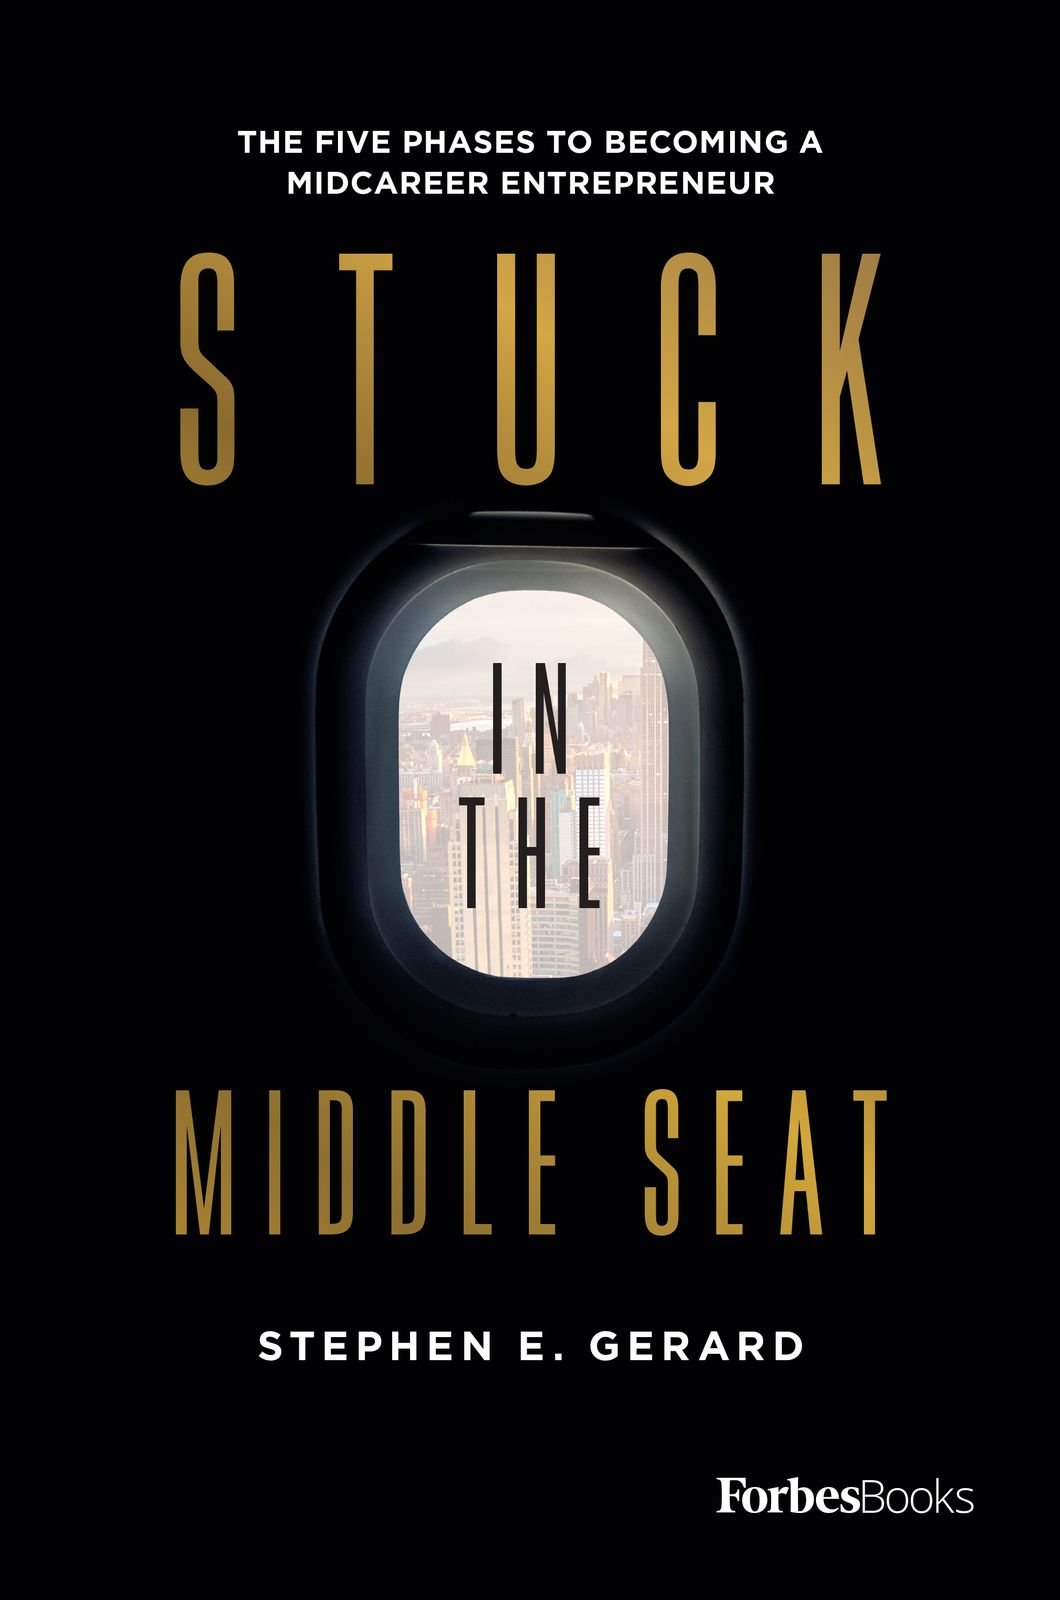 Stuck In The Middle Seat: The Five Phases To Becoming A Midcareer Entrepreneur